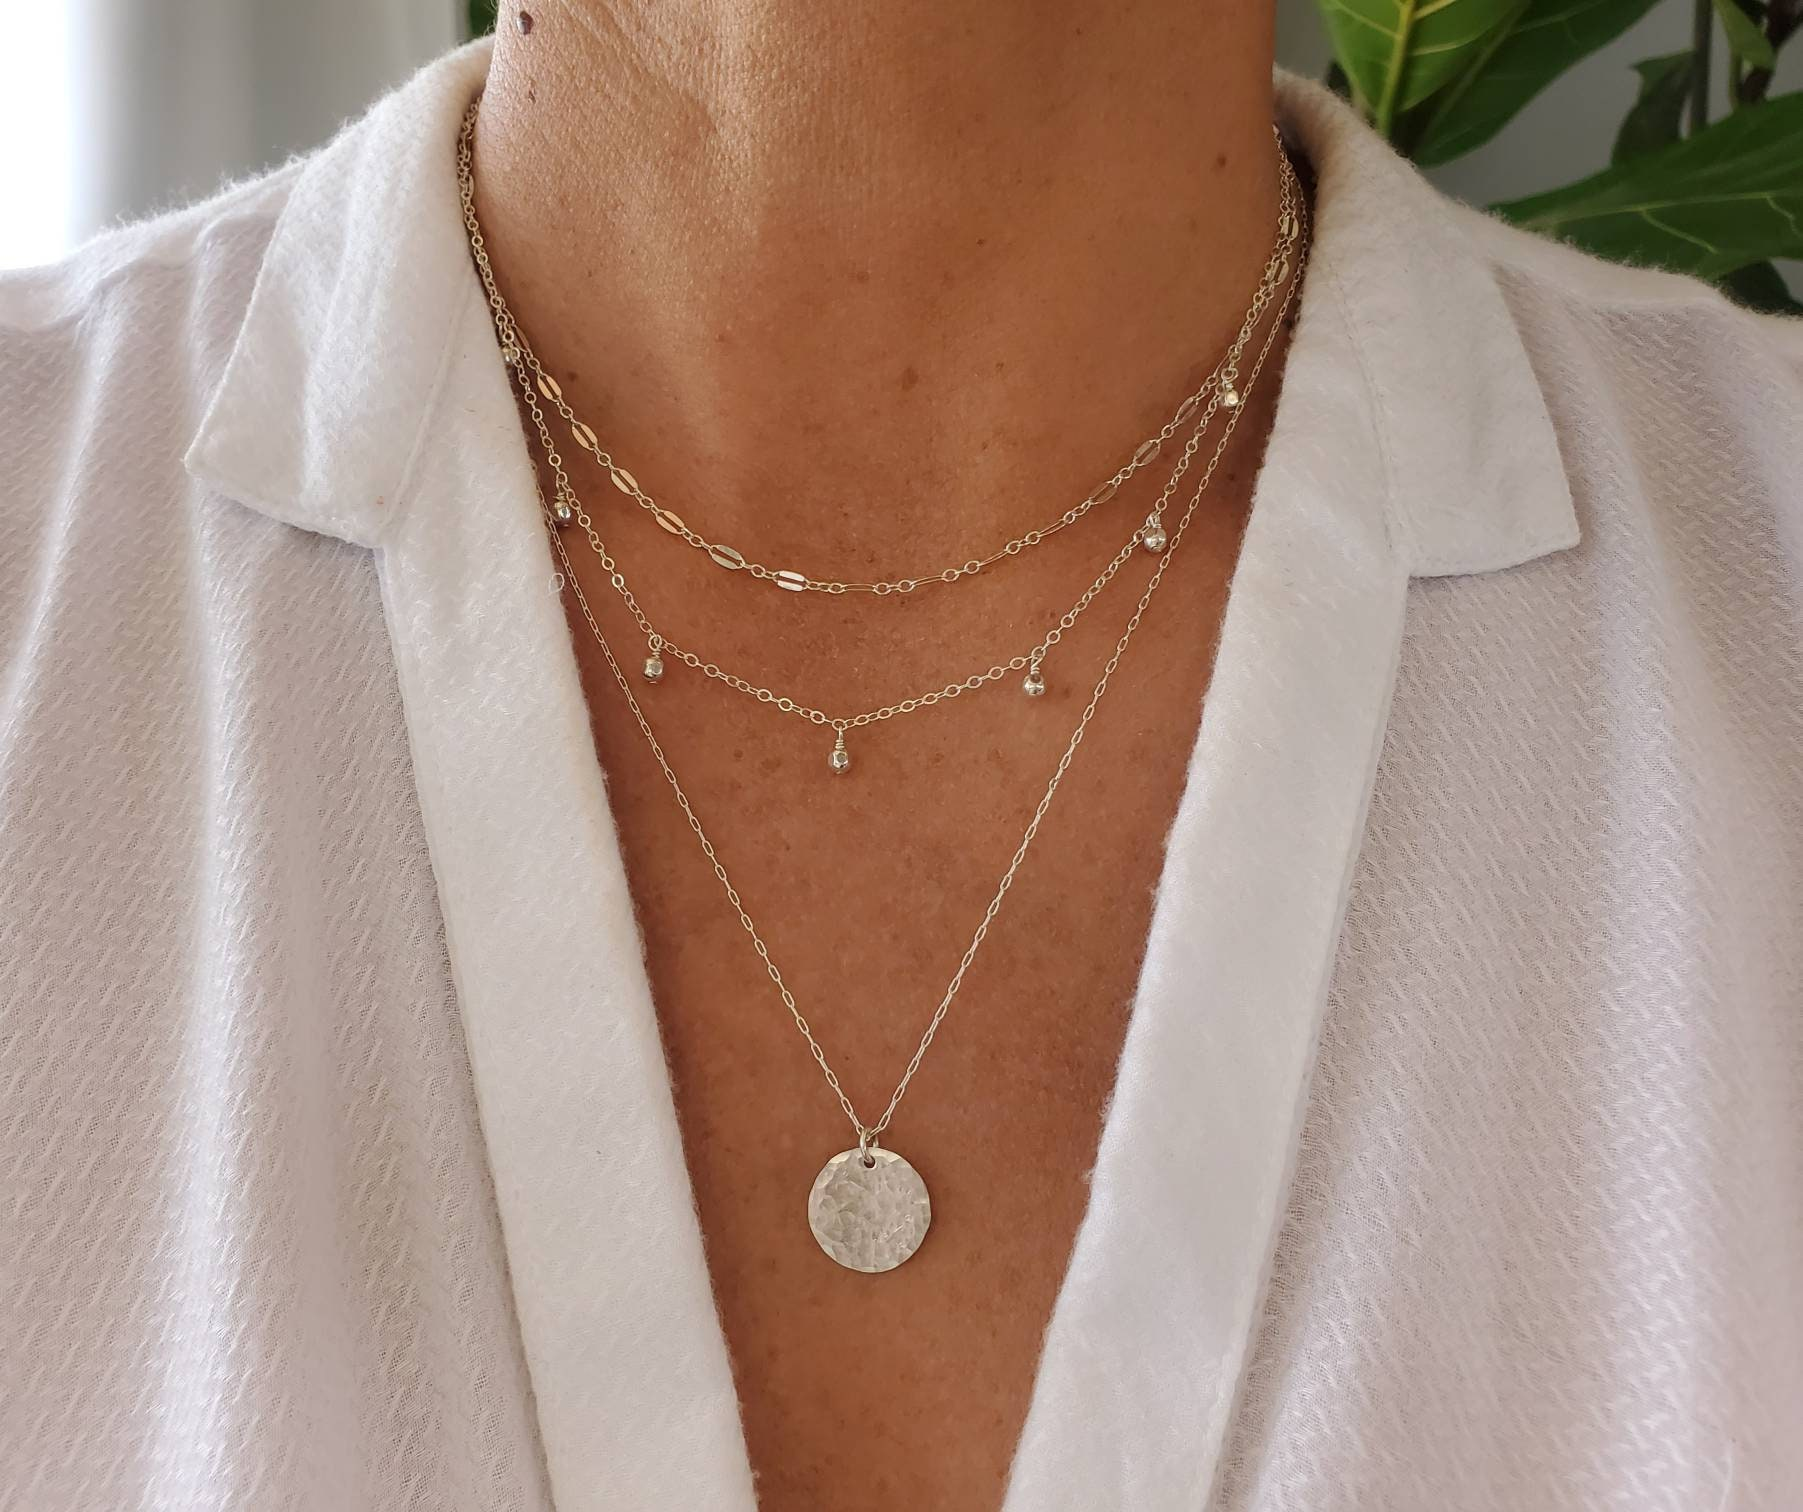 edgy jewelry chain jewelry The Three Layered Necklace stainless steel  SHOPCIDIKNEE layered necklace dainty